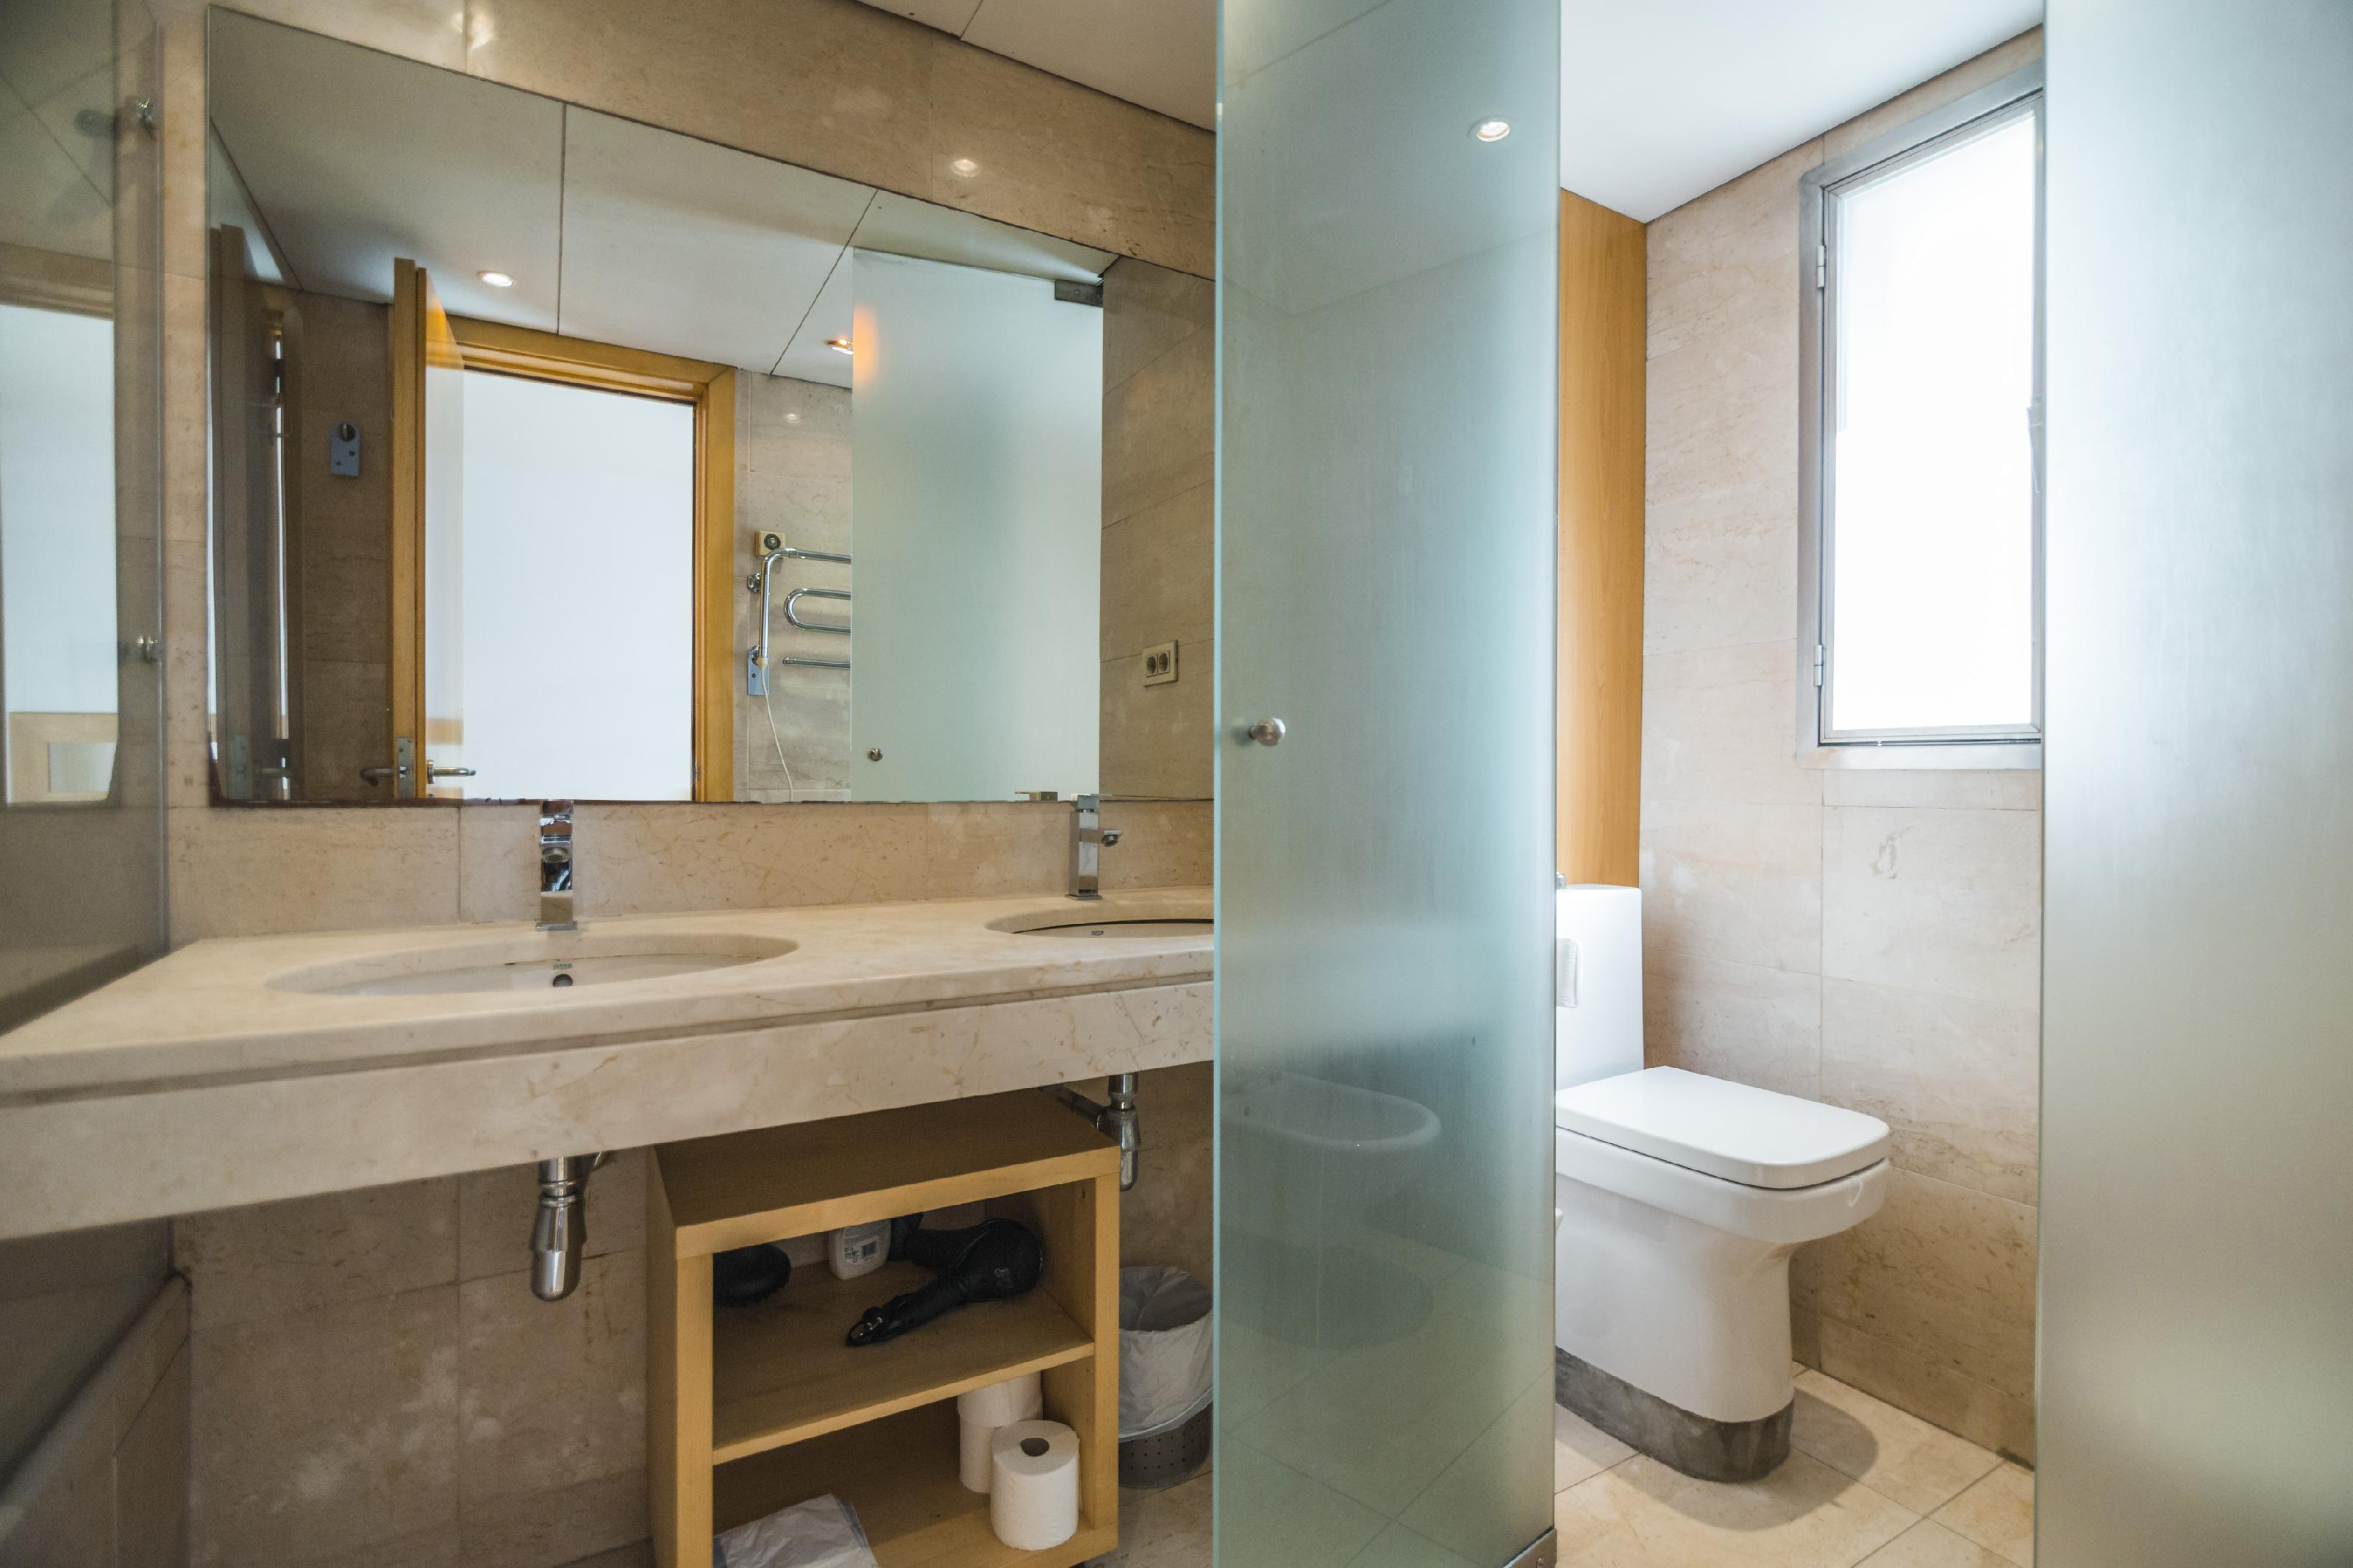 109651 Apartment for sale in Eixample, Dreta Eixample 16